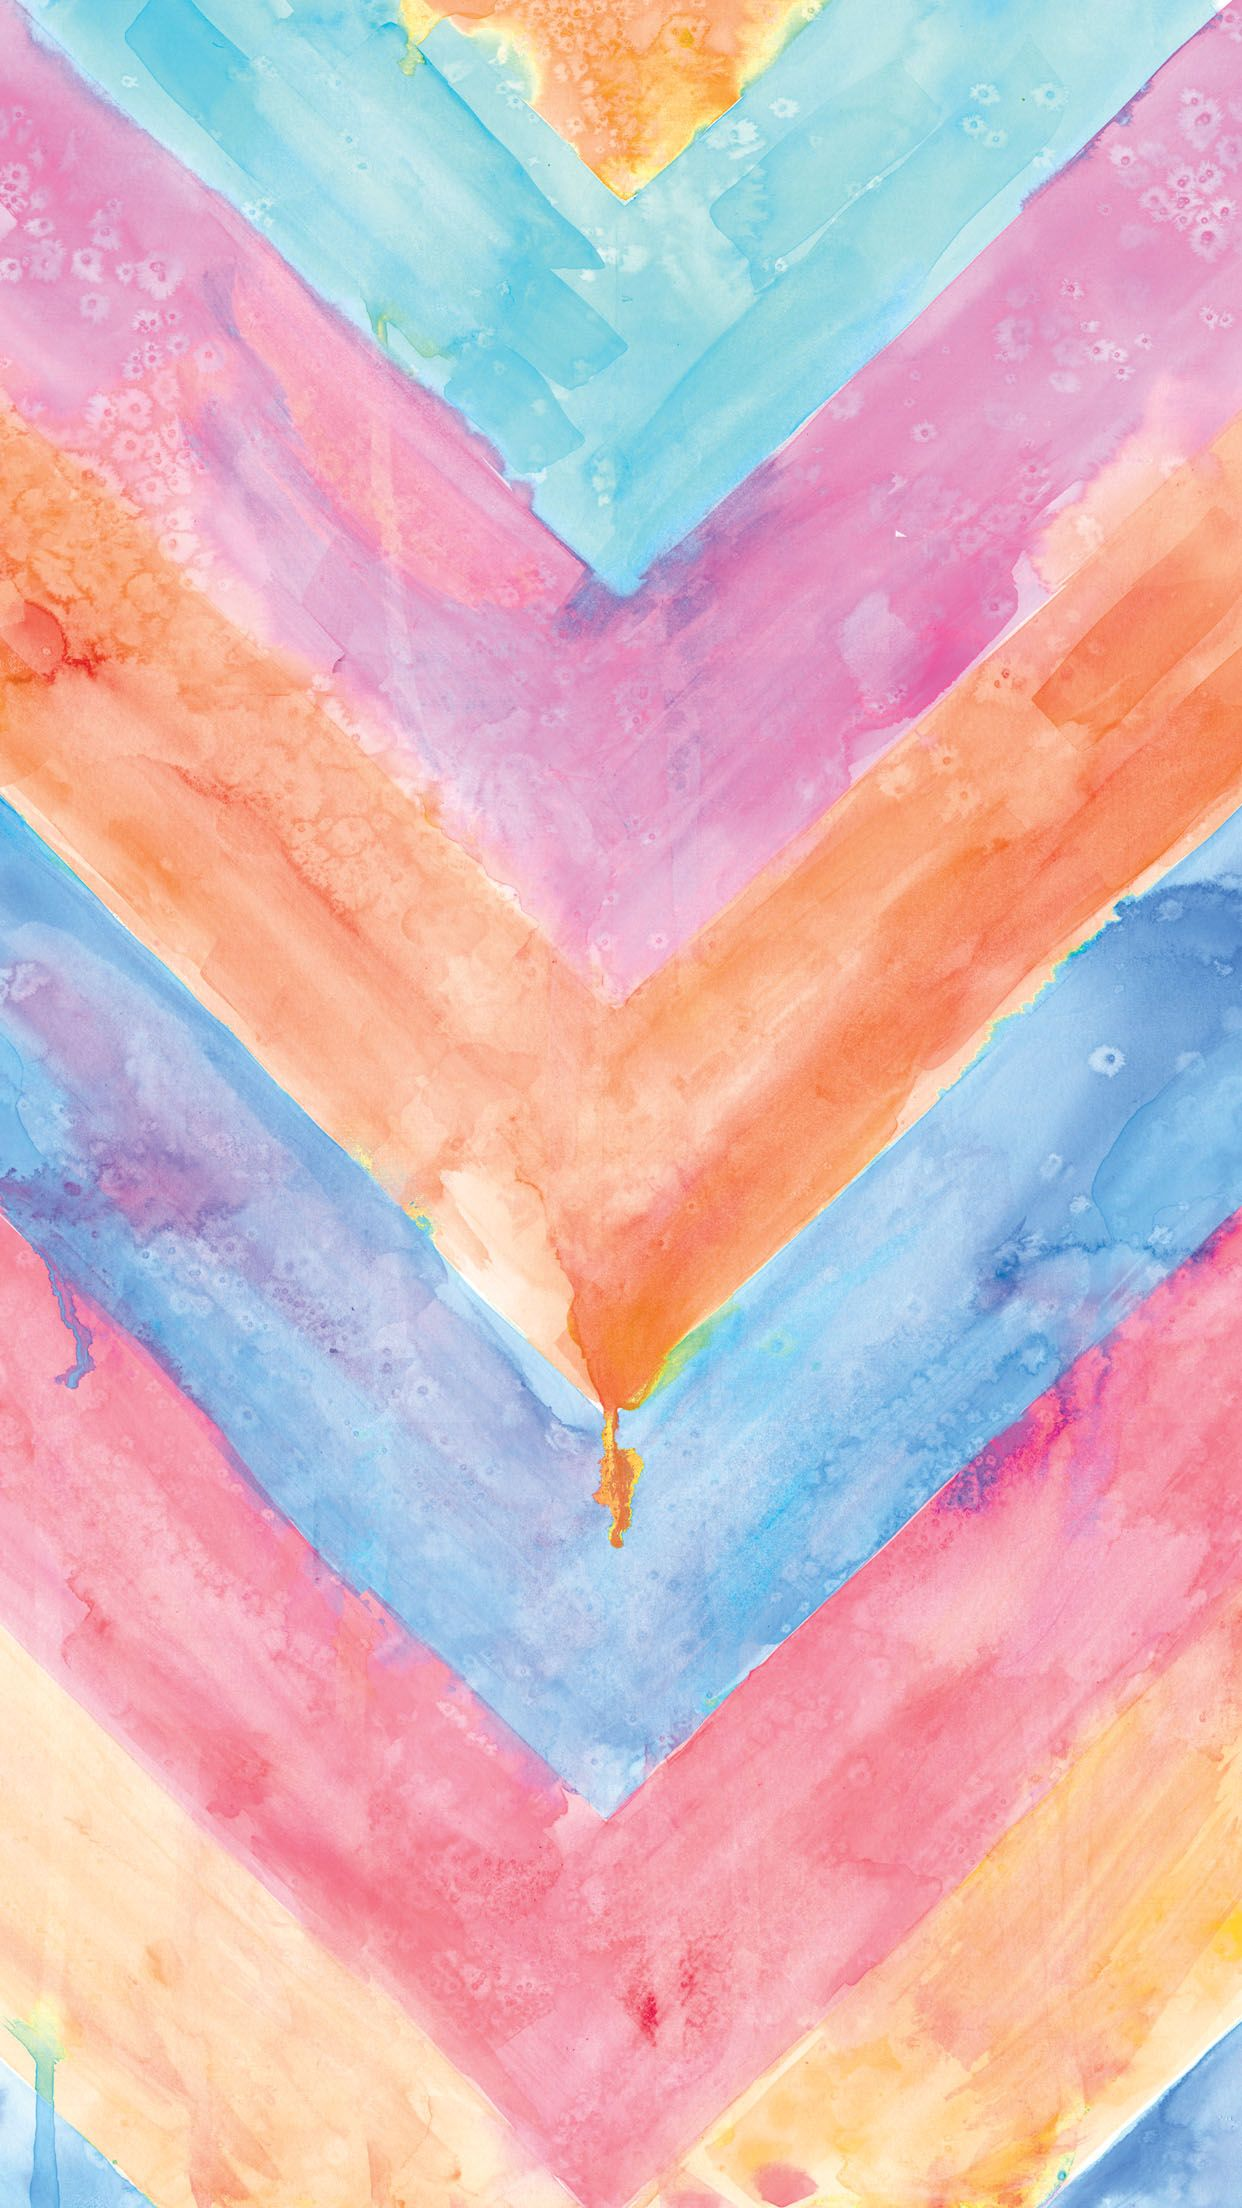 Free Iphone Wallpaper Watercolor Wallpaper Phone Iphone